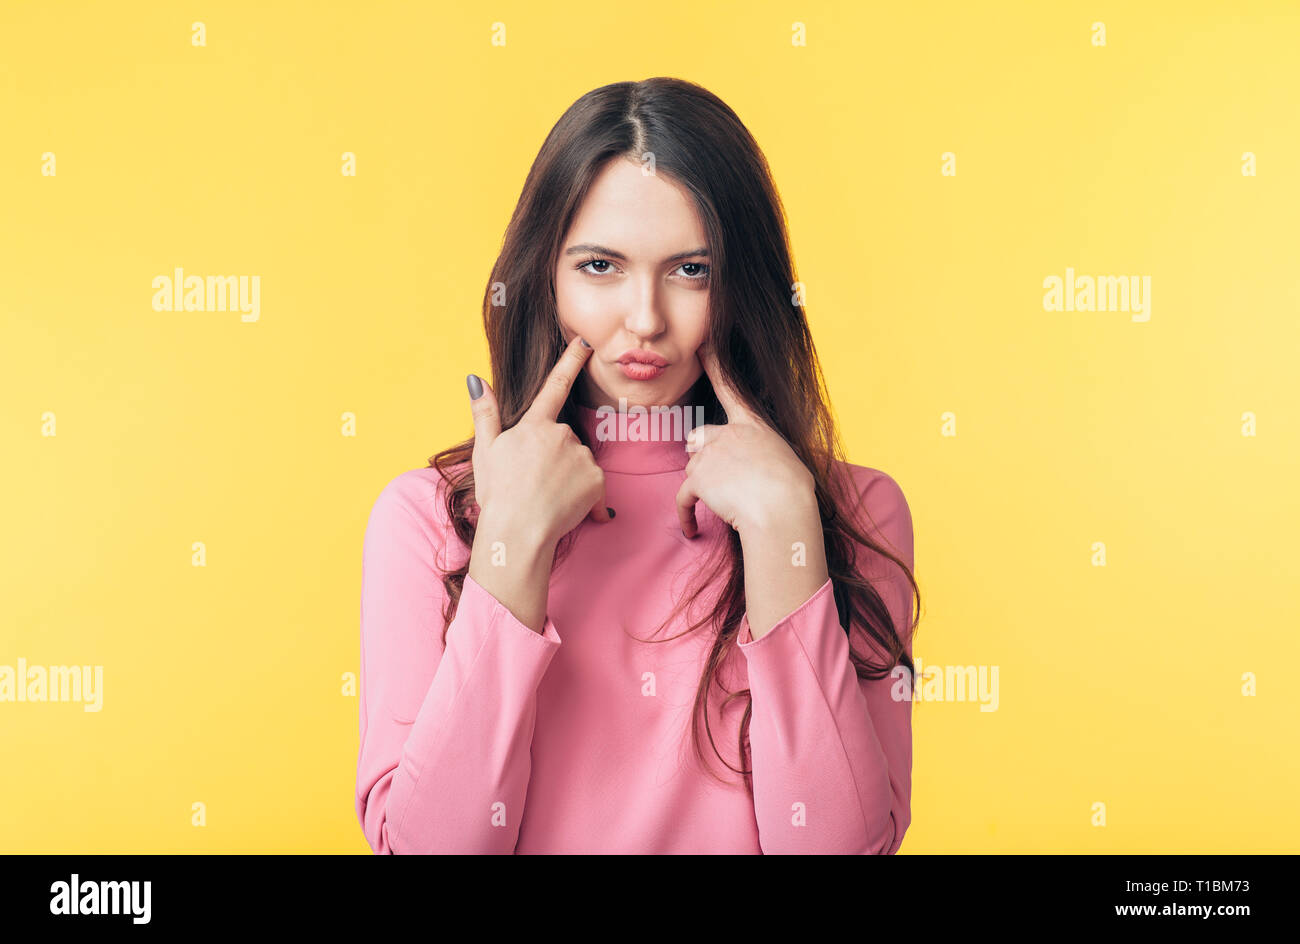 Displeased capricious woman grimacing isolated on yellow background - Stock Image